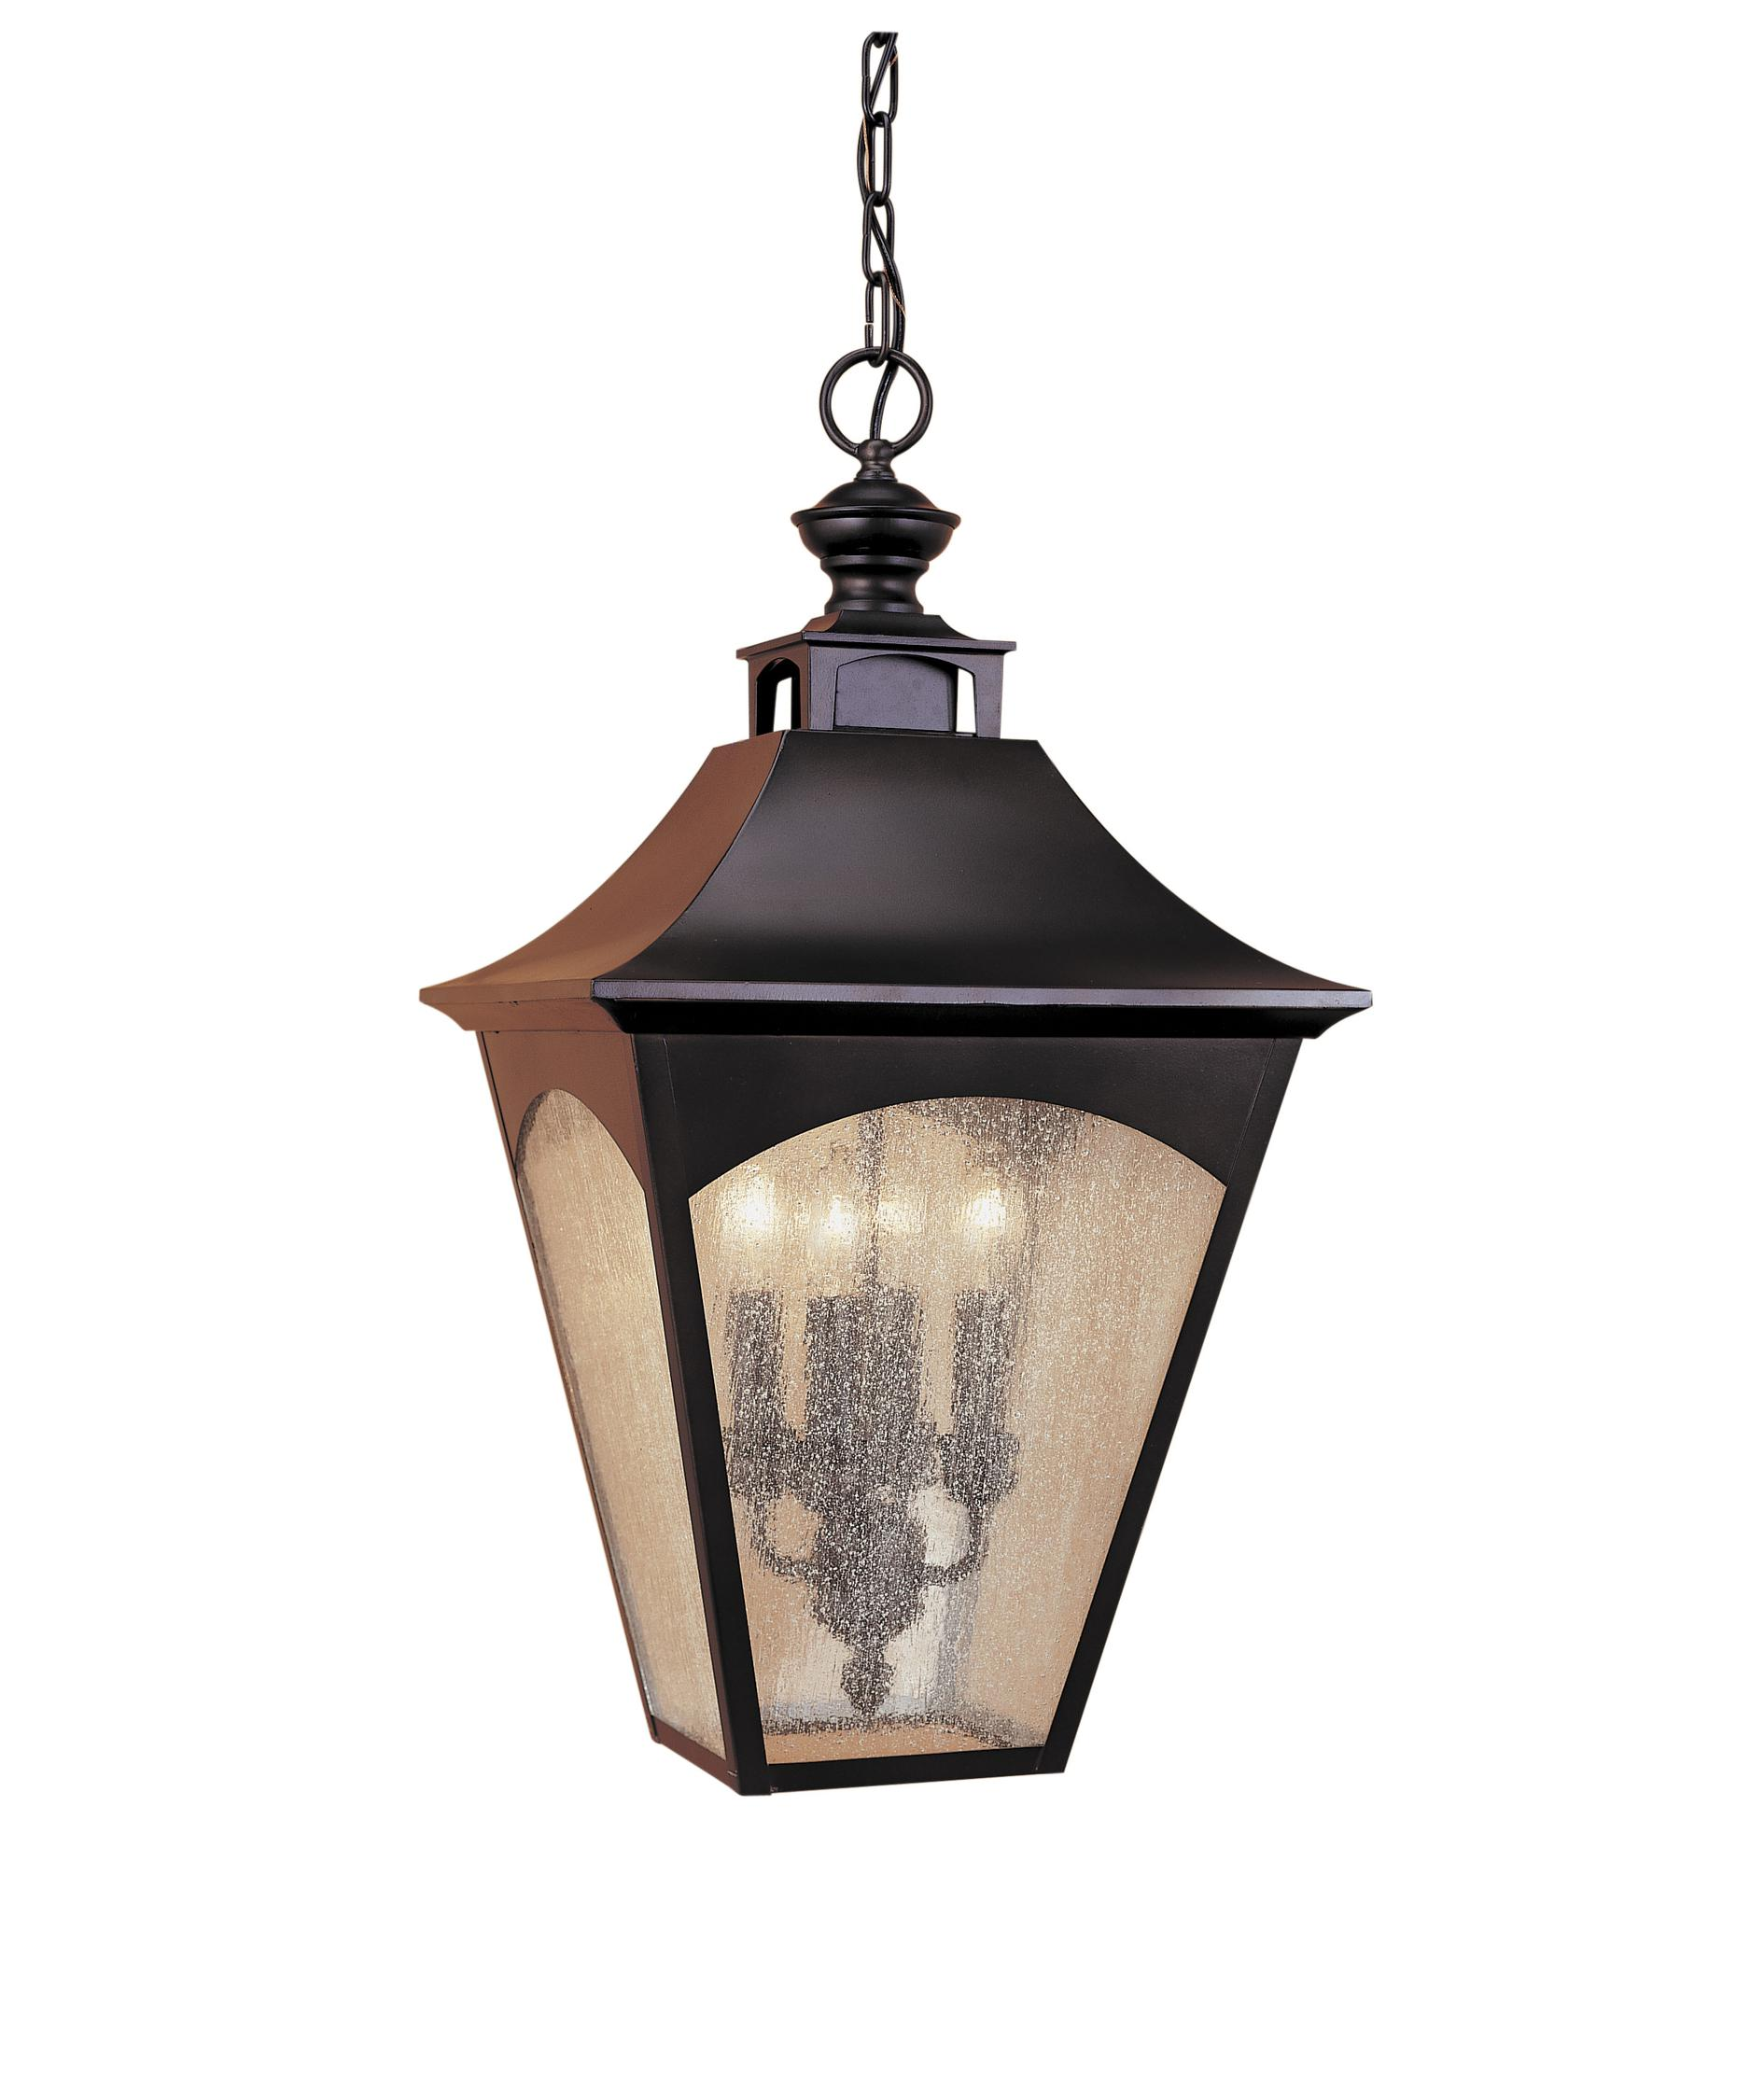 Outdoor hanging lighting - Shown In Oil Rubbed Bronze Finish And Seeded Glass